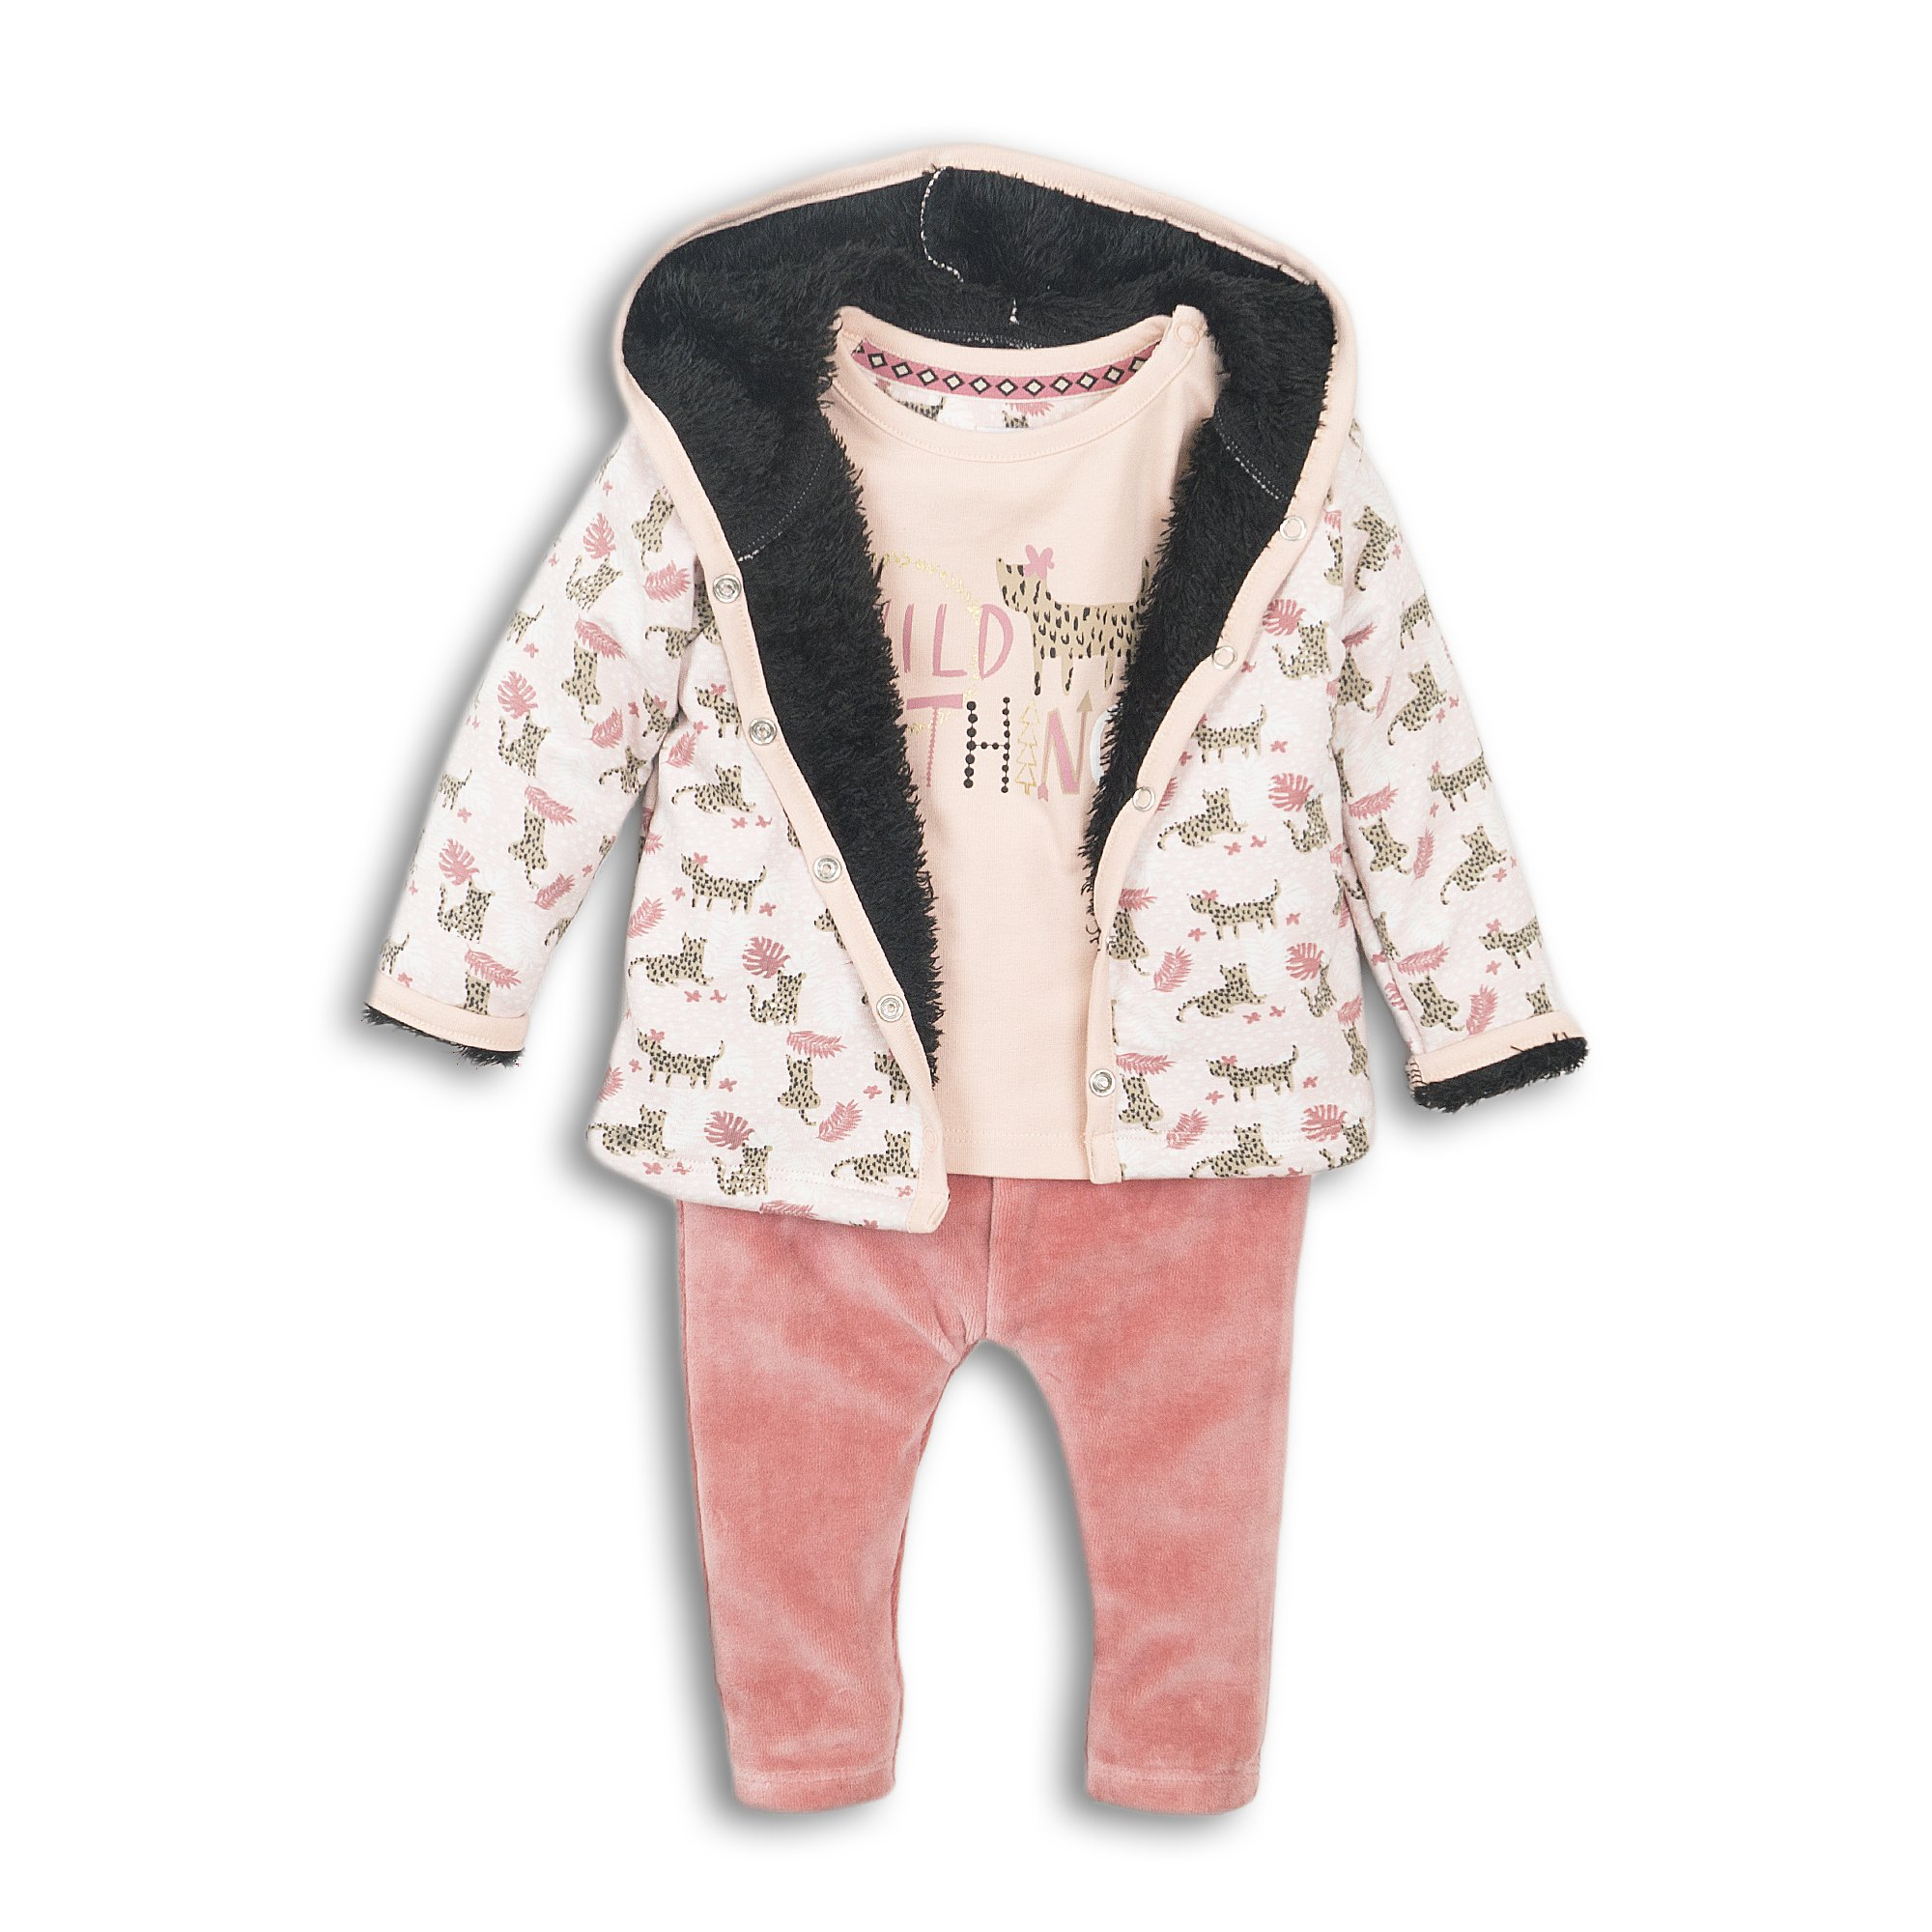 D36305-31 3 pce Babysuit  Faded peach + dark old pink